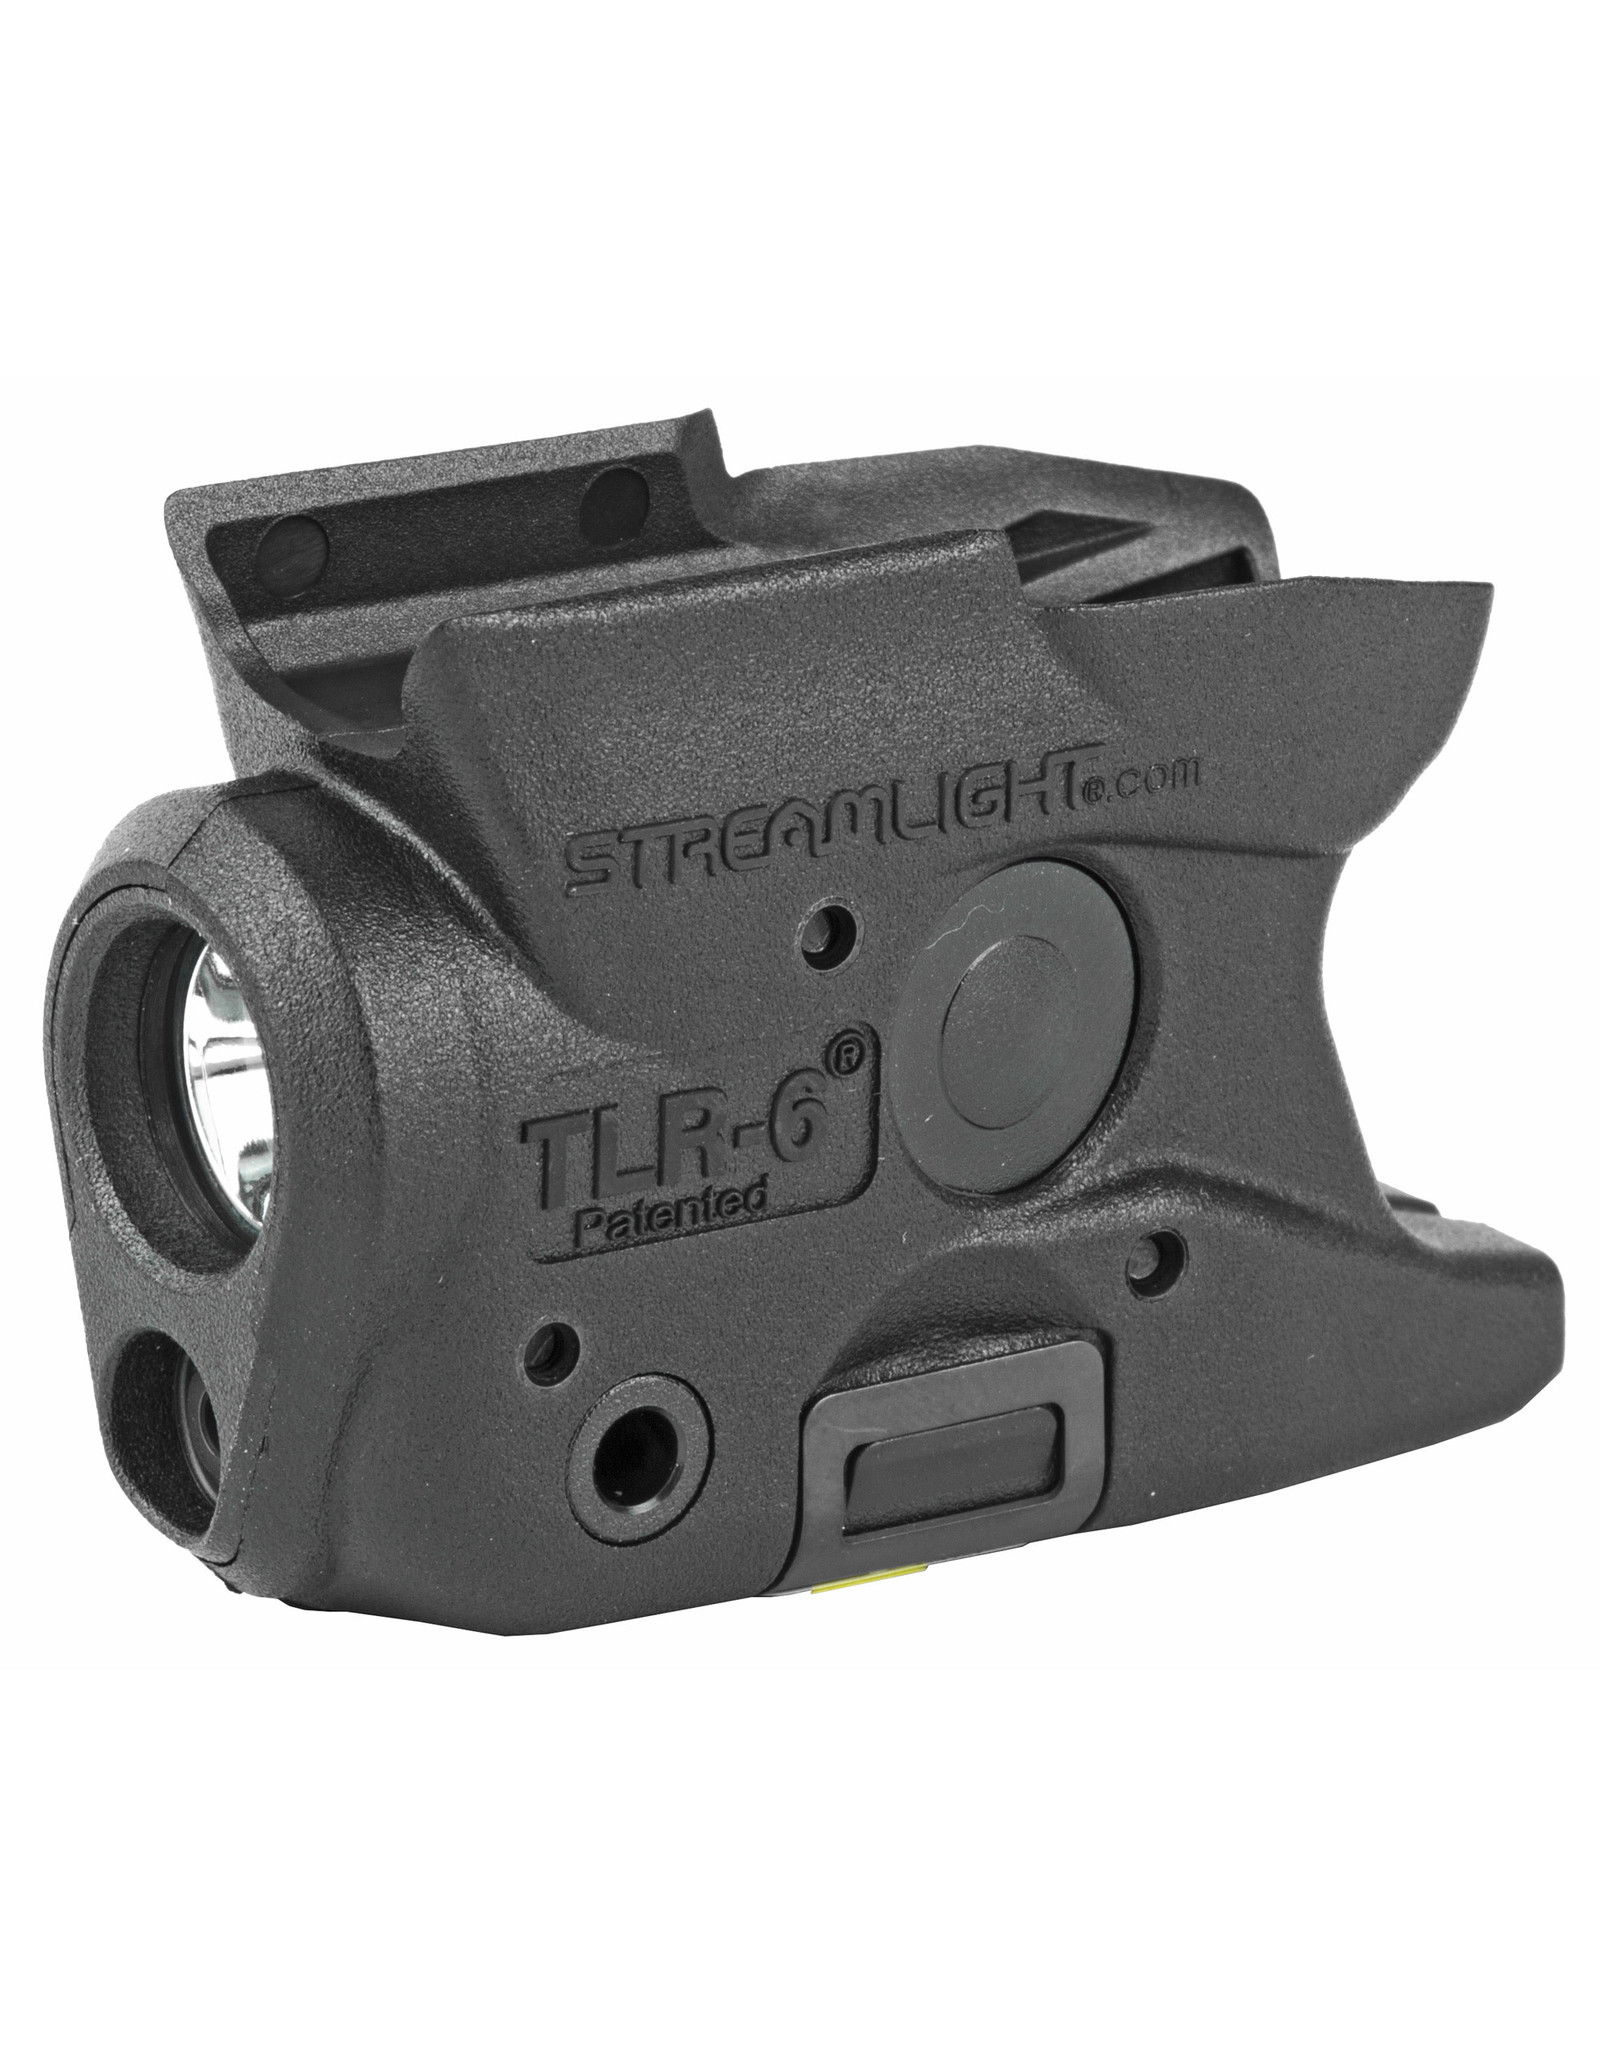 Streamlight Streamlight - TLR-6 Light/Laser - M&P Shield